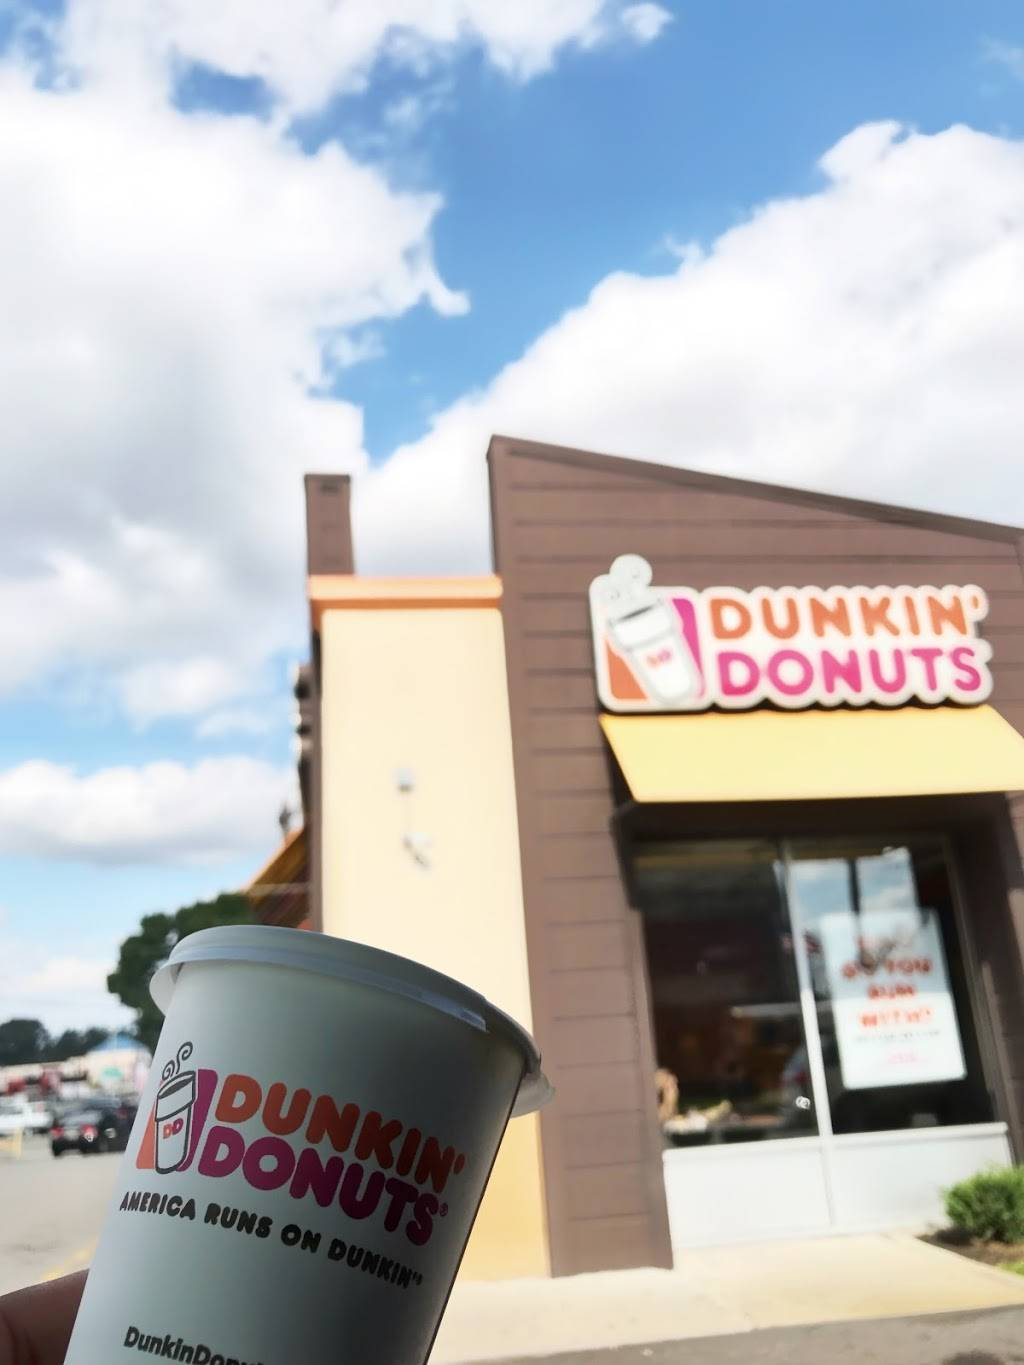 Dunkin Donuts | cafe | 131-147 Rte 17 N, Lukoil, Rutherford, NJ 07070, USA | 2019390702 OR +1 201-939-0702